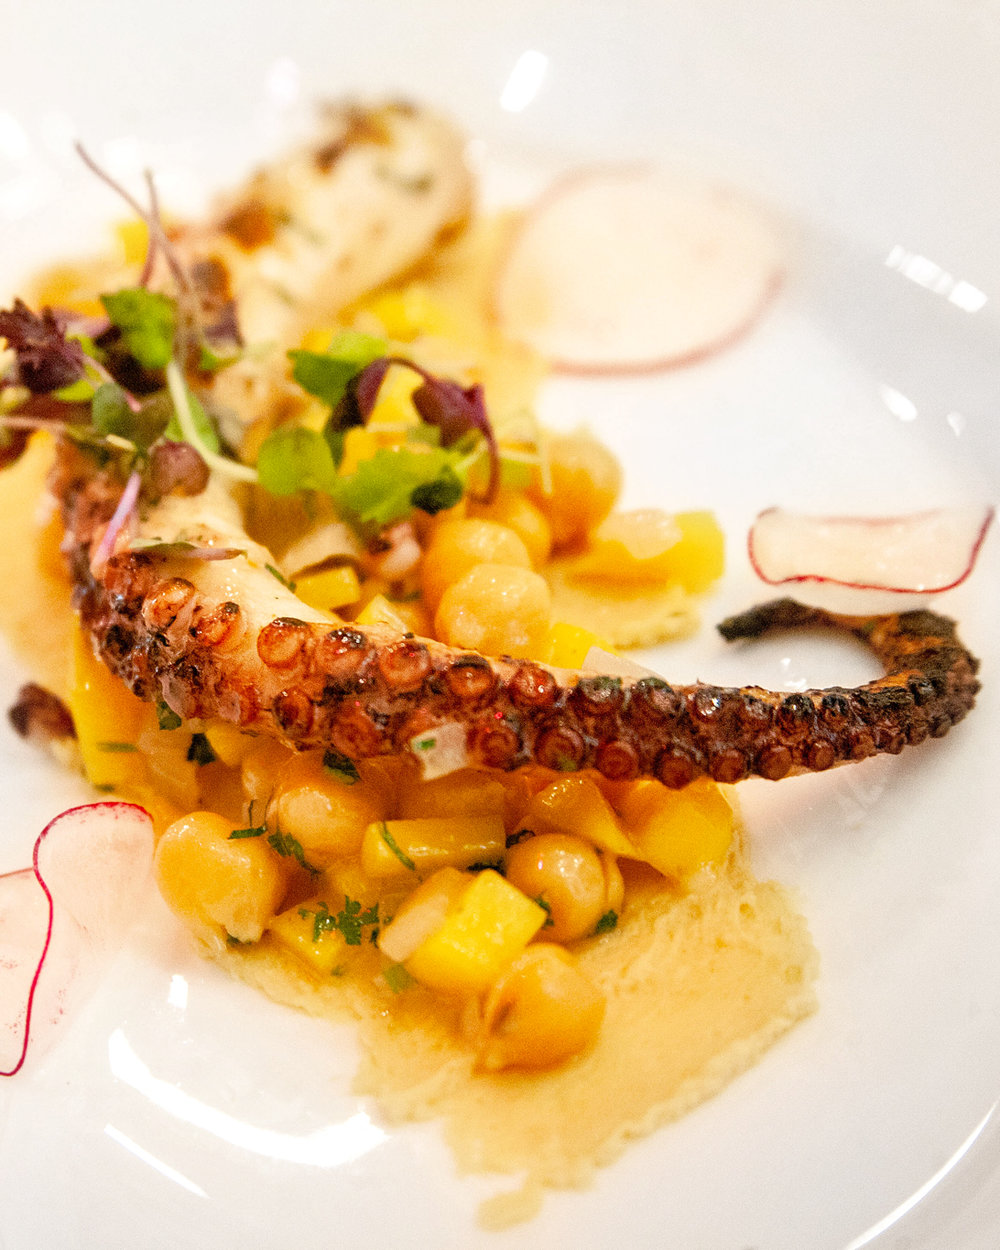 Grilled Octopus appetizer